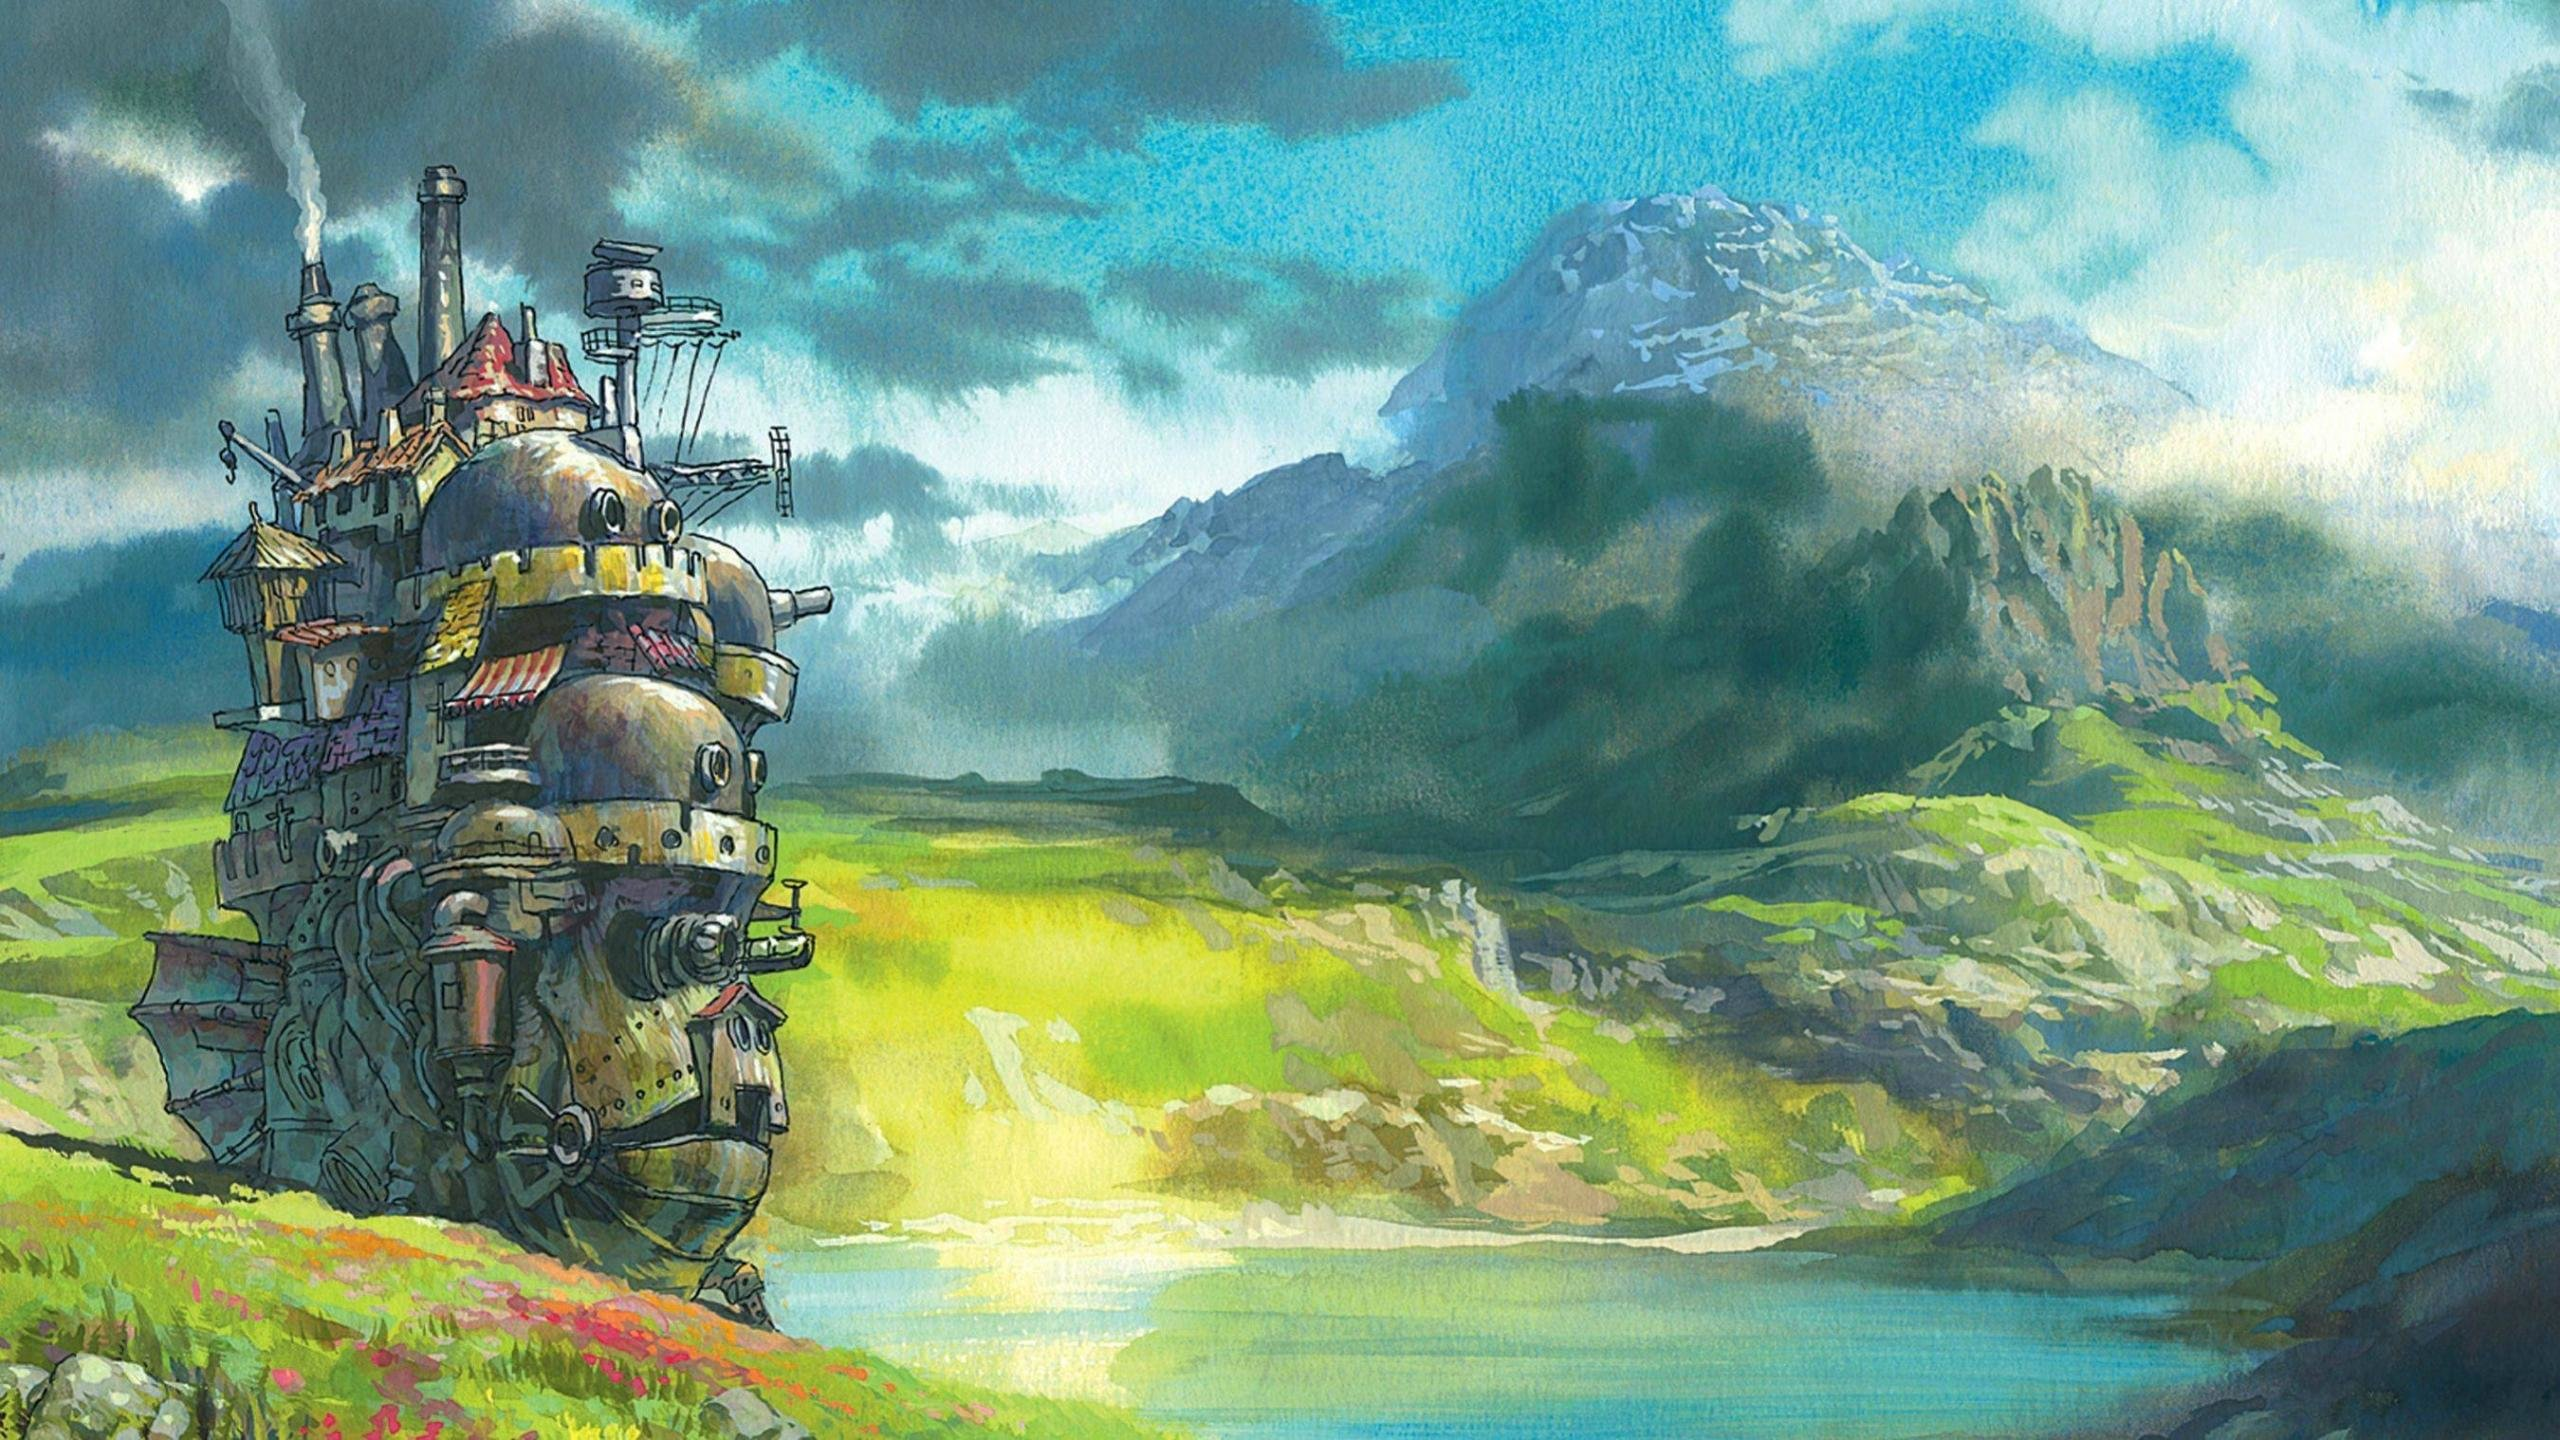 Free download Howl's Moving Castle wallpaper ID:347862 hd 2560x1440 for computer